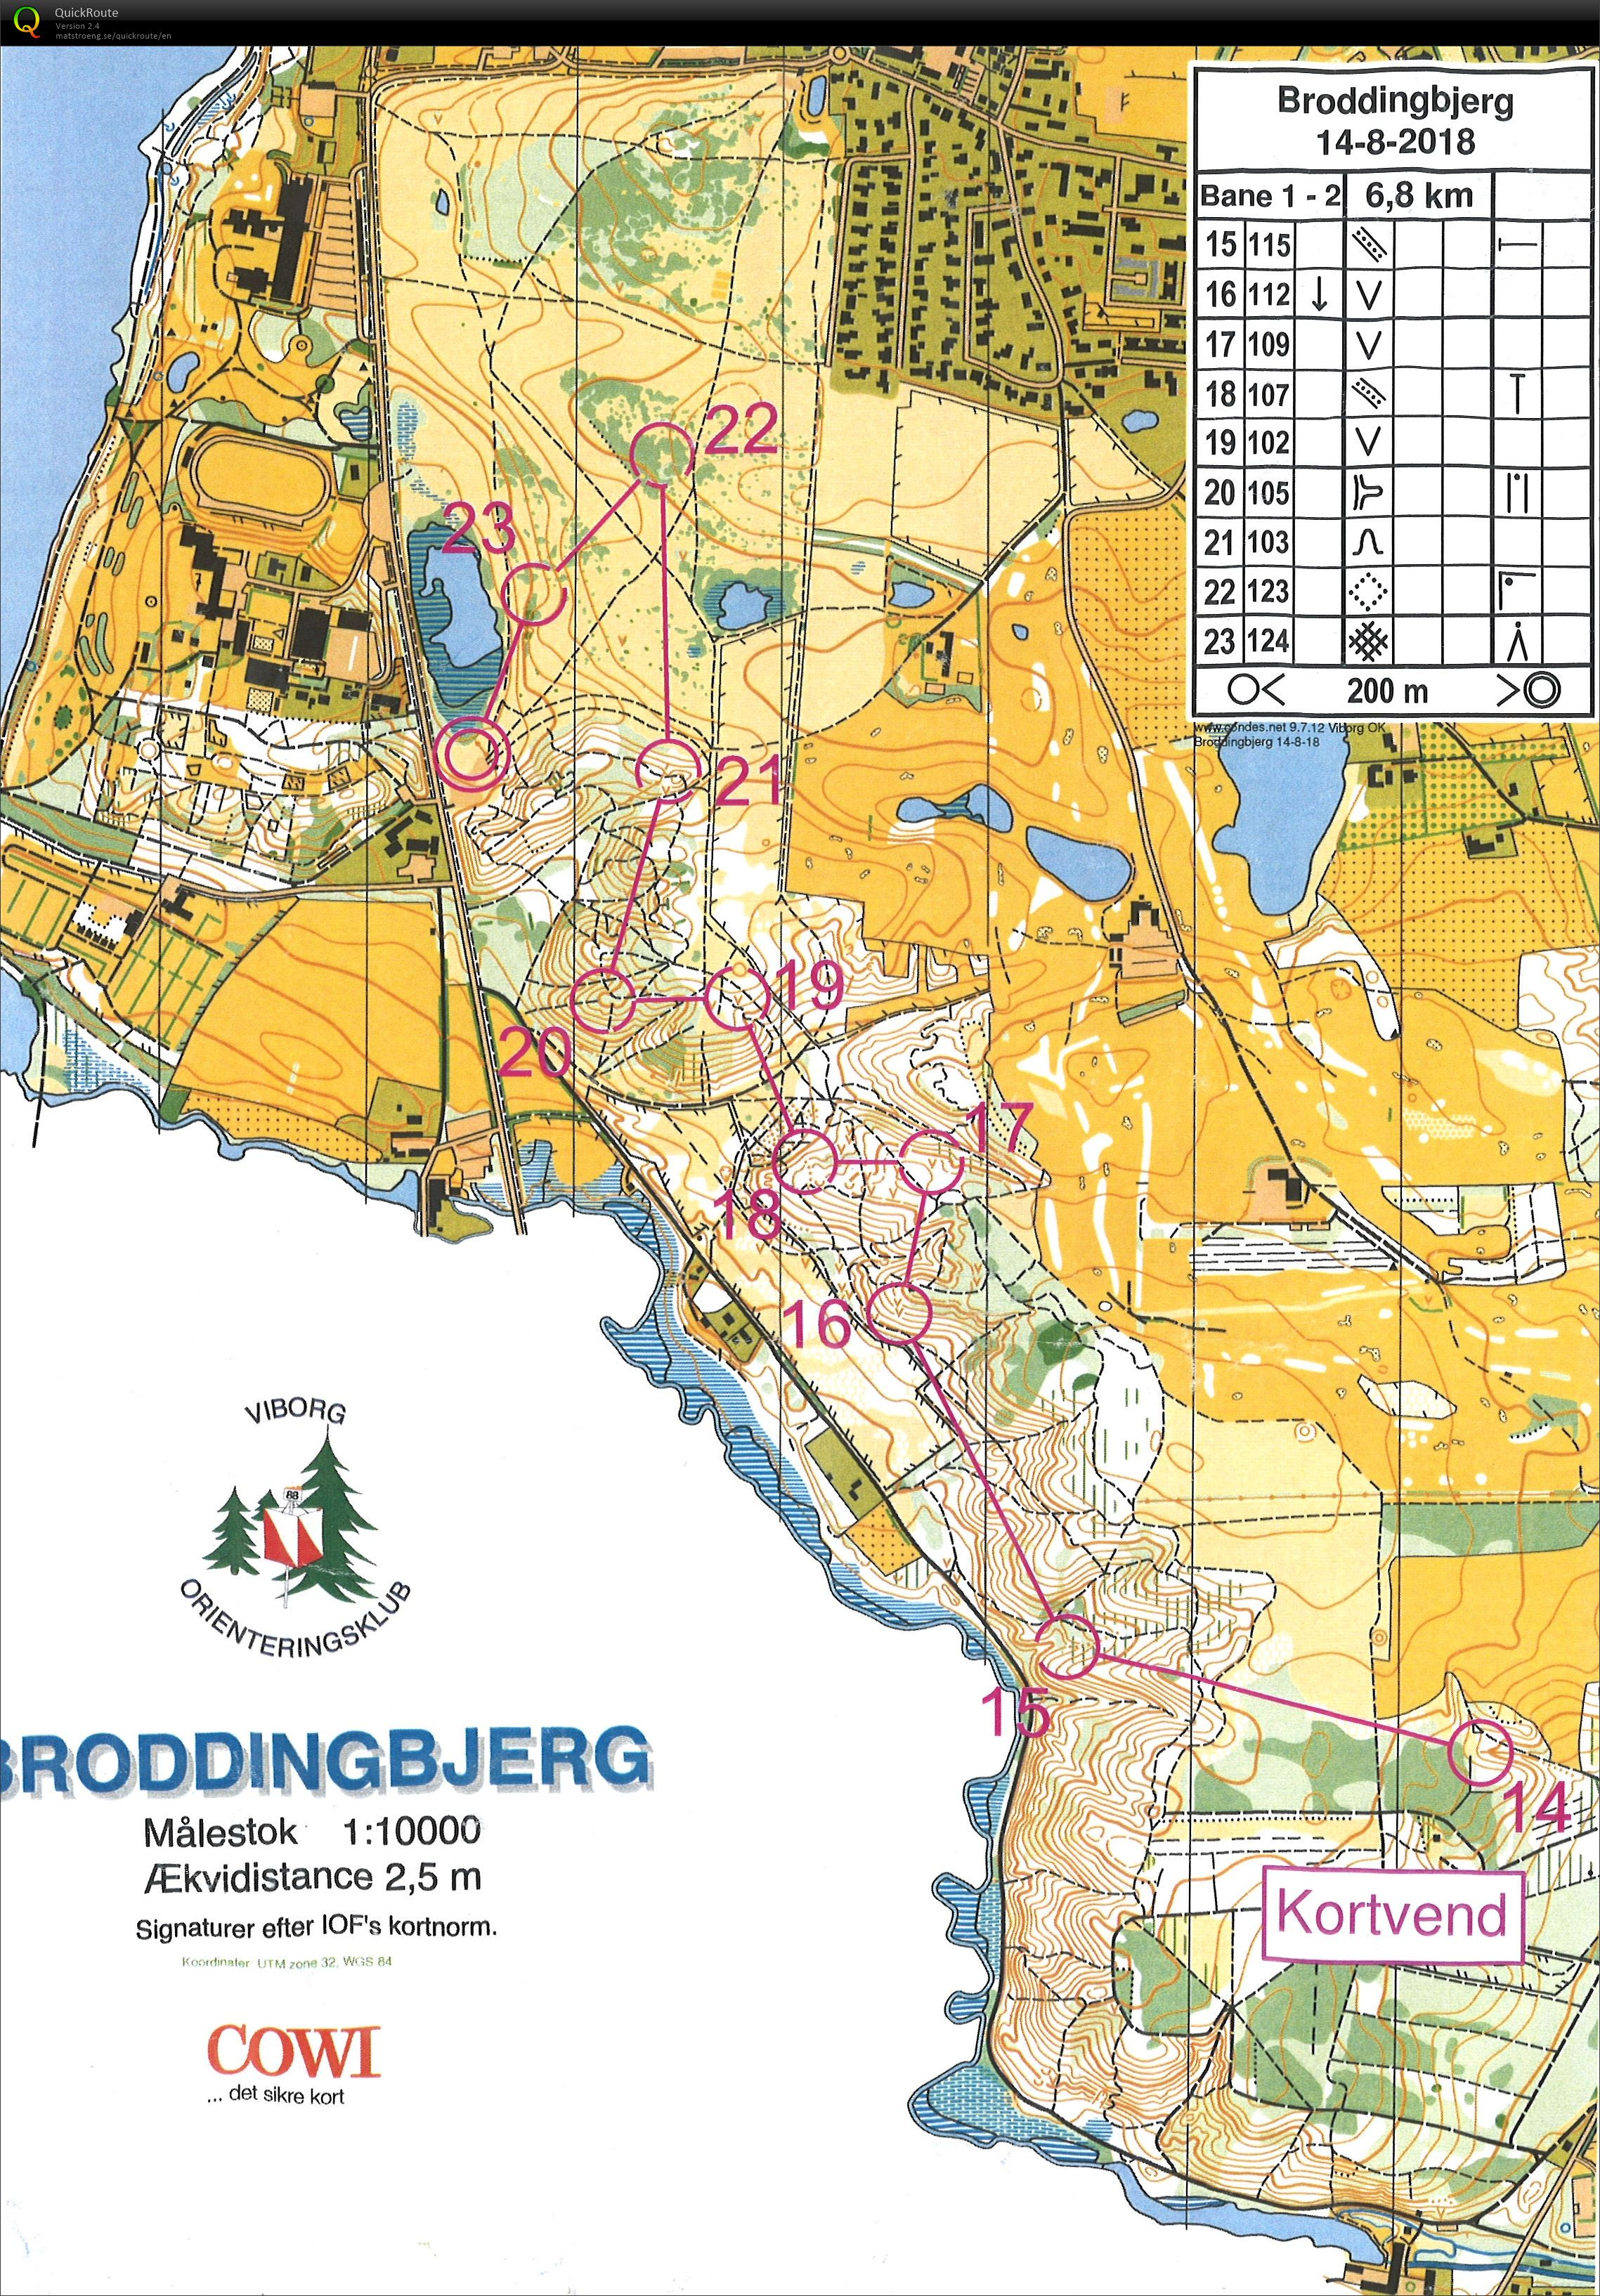 Ifk Lob Broddingbjerg Bane 1 2 August 14th 2018 Orienteering